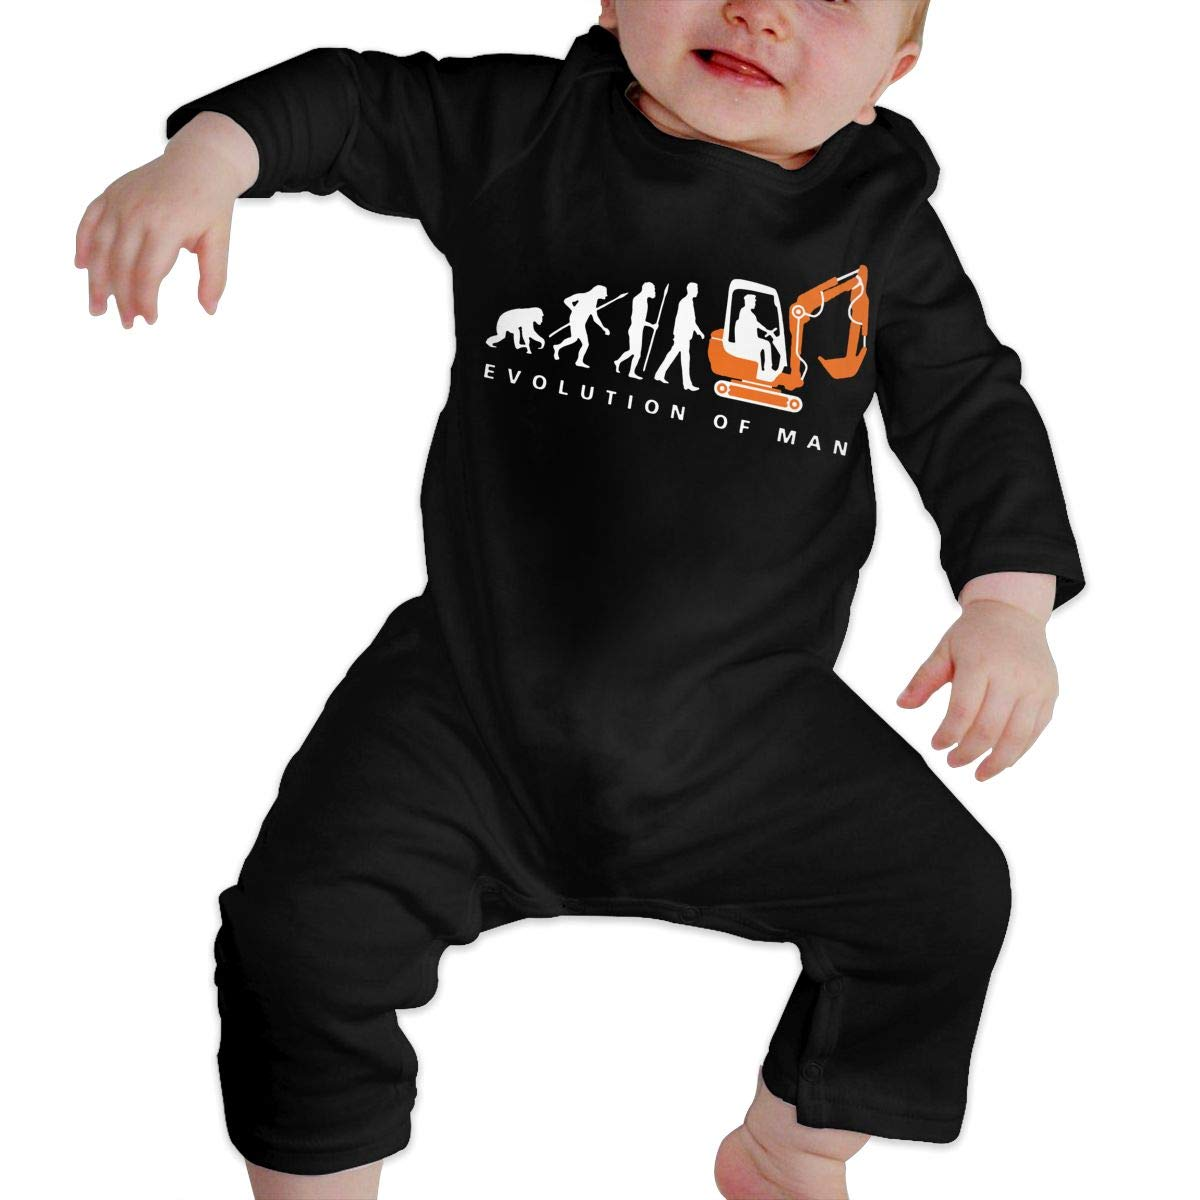 UGFGF-S3 Evolution Excavator Newborn Kids Long Sleeve Bodysuit Baby Rompers Onsies